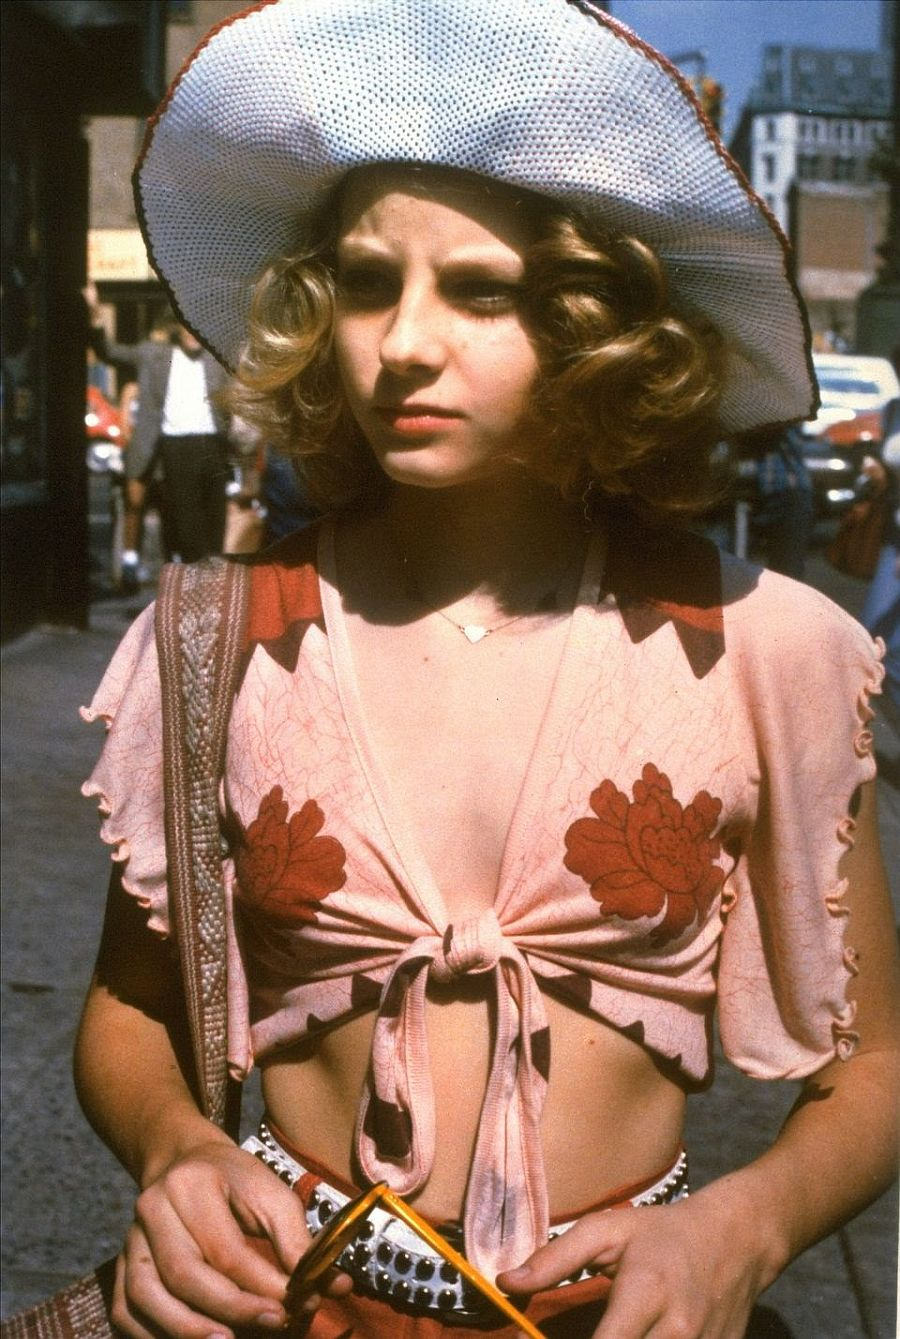 behind-the-scenes-jodie-foster-on-the-set-of-taxi-driver-1976-12